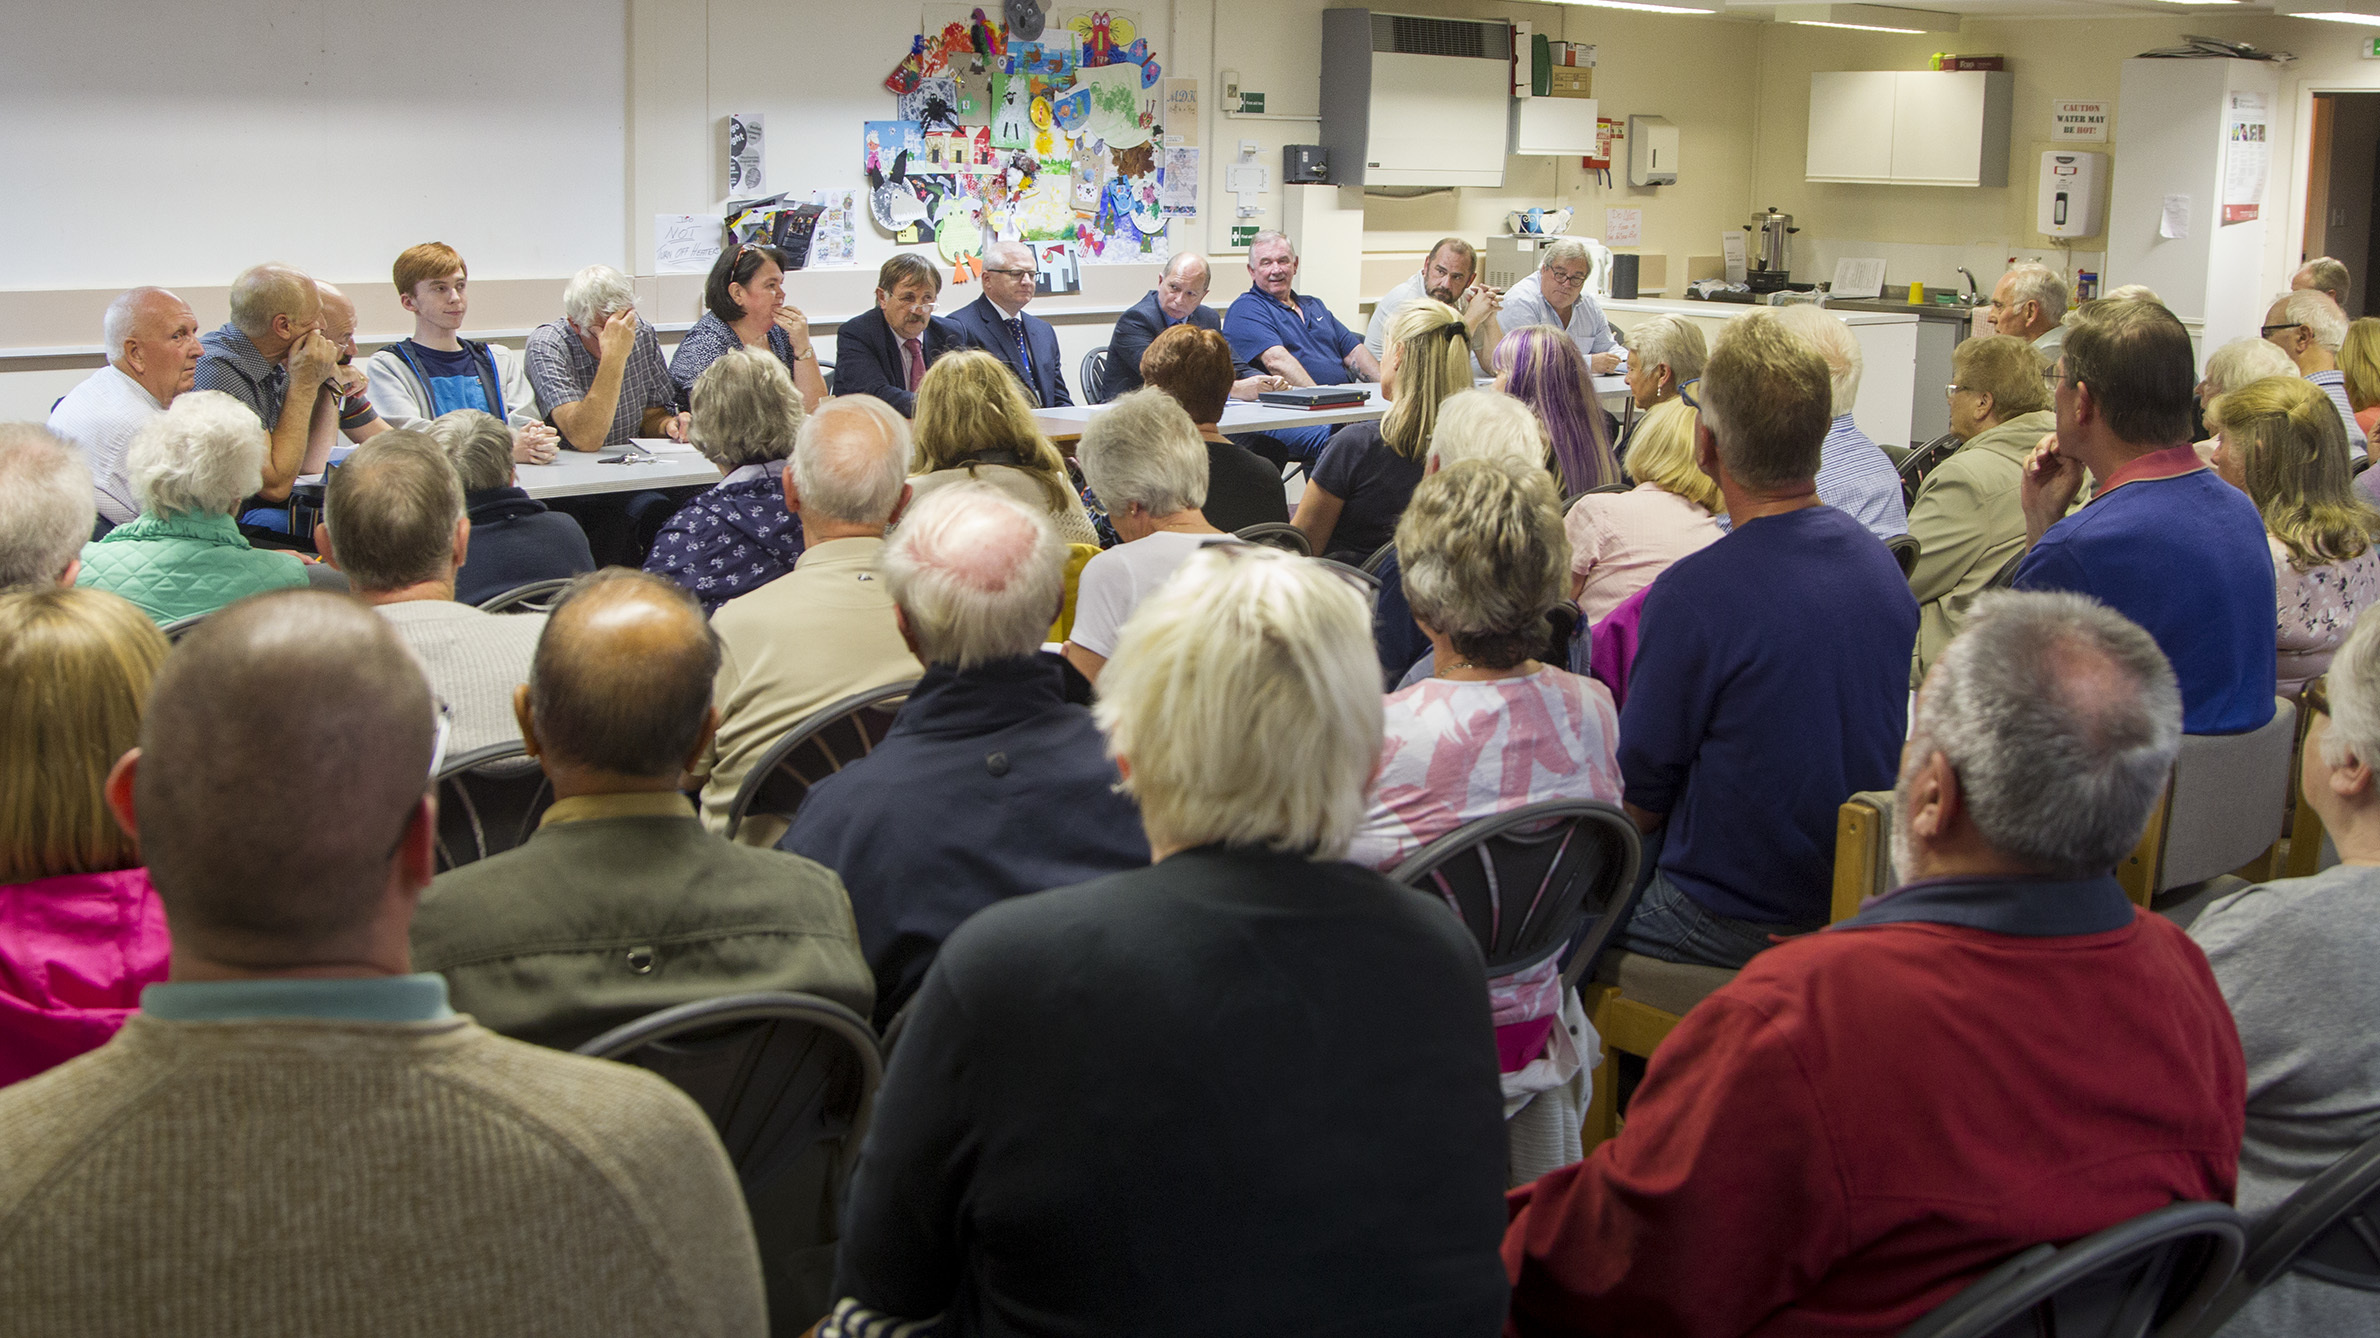 A Monifieth Community Council meeting to discuss the closure threat attracted a large audience.